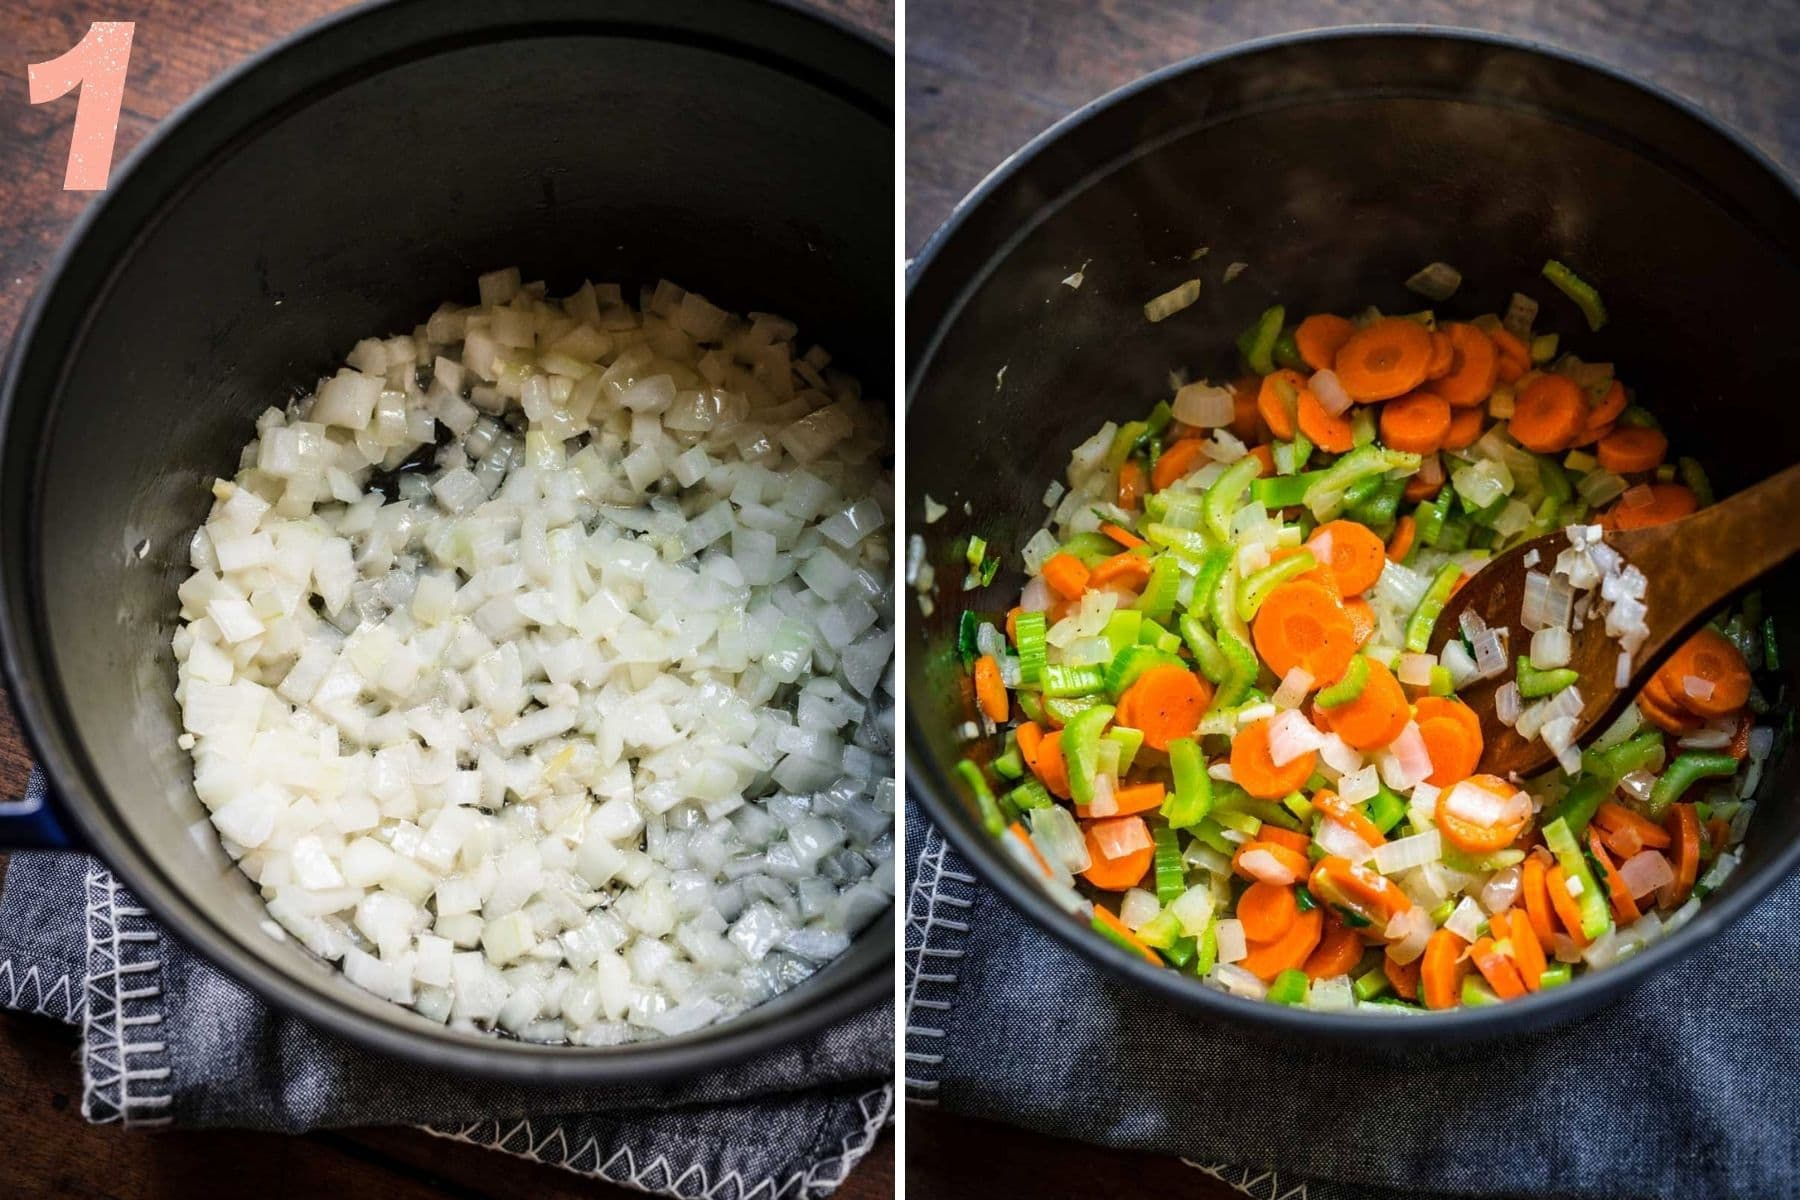 On the left: onions cooking in the pot. On the right: carrots and celery in the pot.